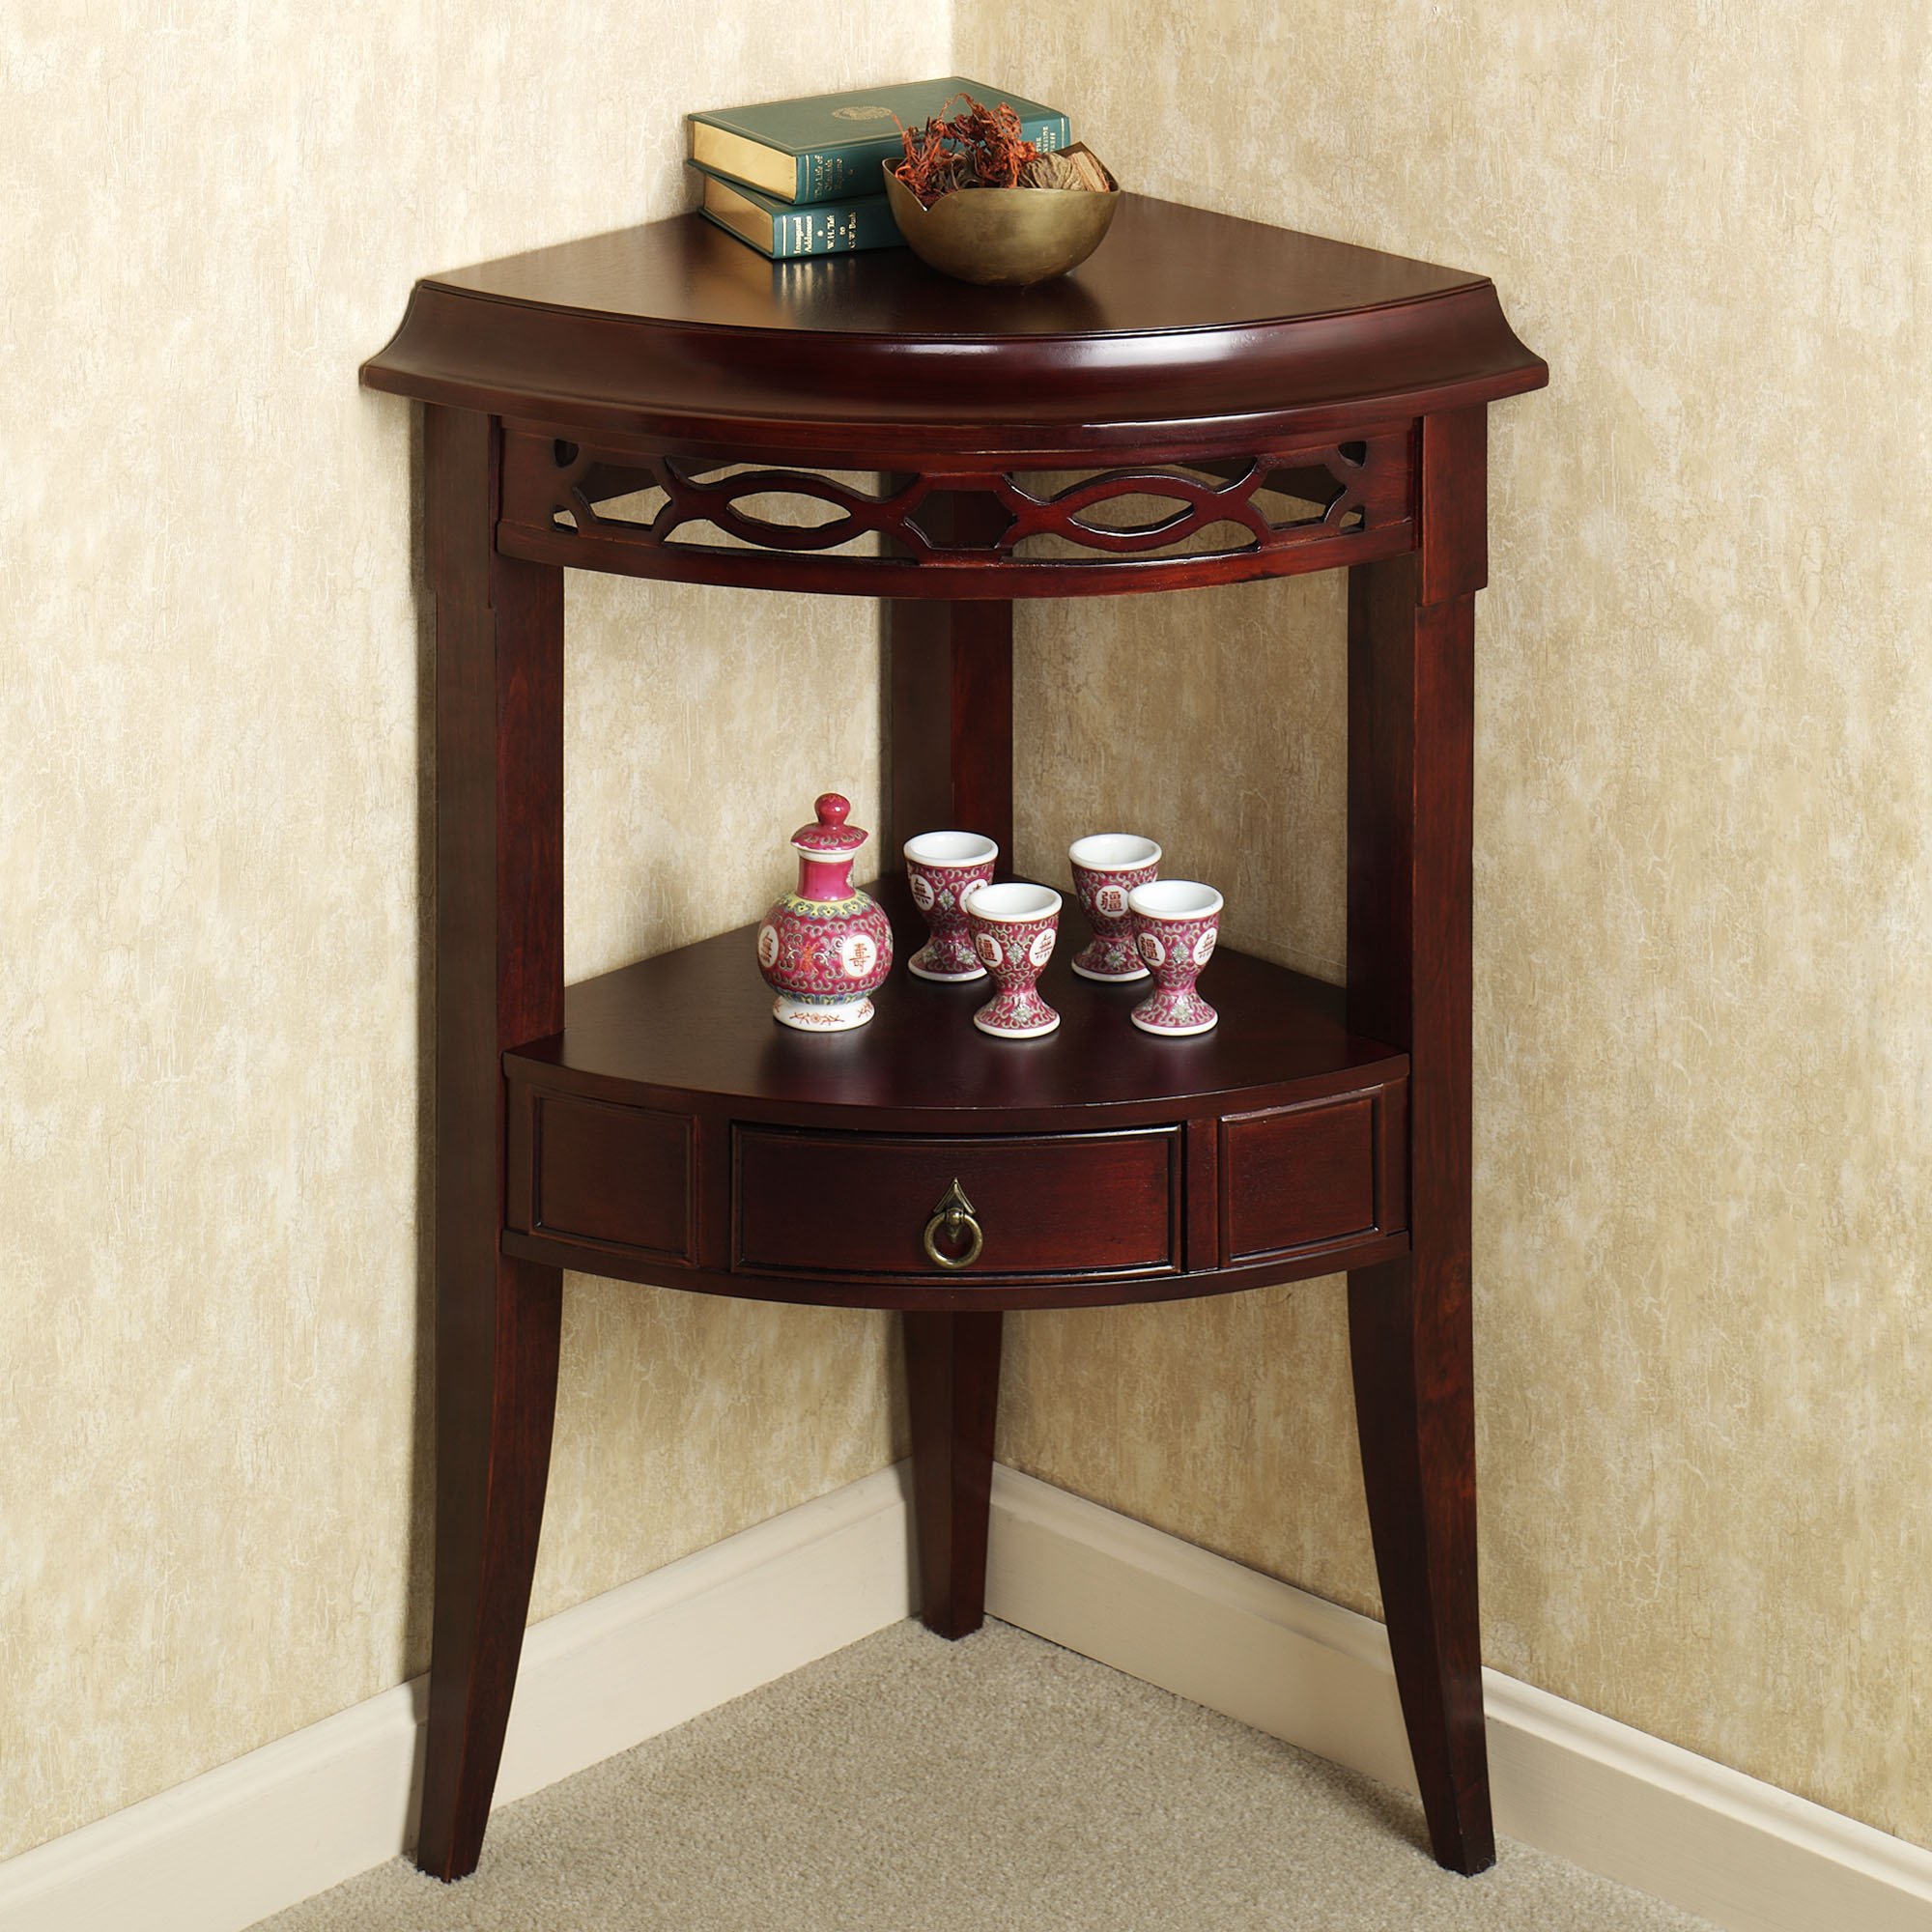 various options for corner accent table design gestablishment home furniture small cherry wood end tables ideas ashley brown couch young america ethan allen british classics